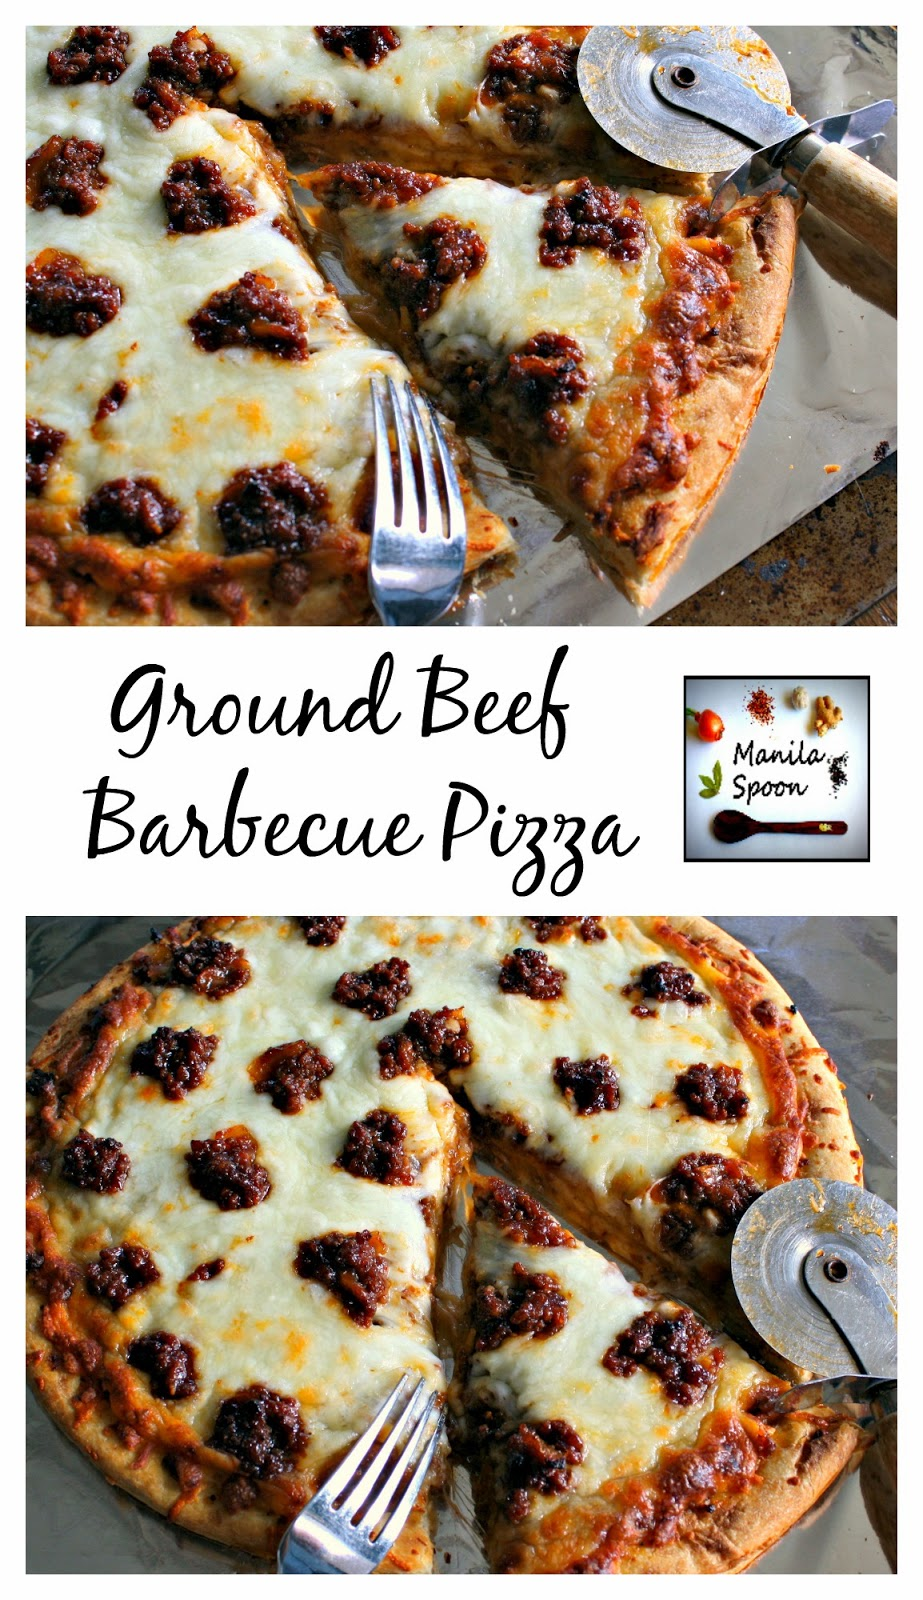 Ground Beef Barbecue Pizza